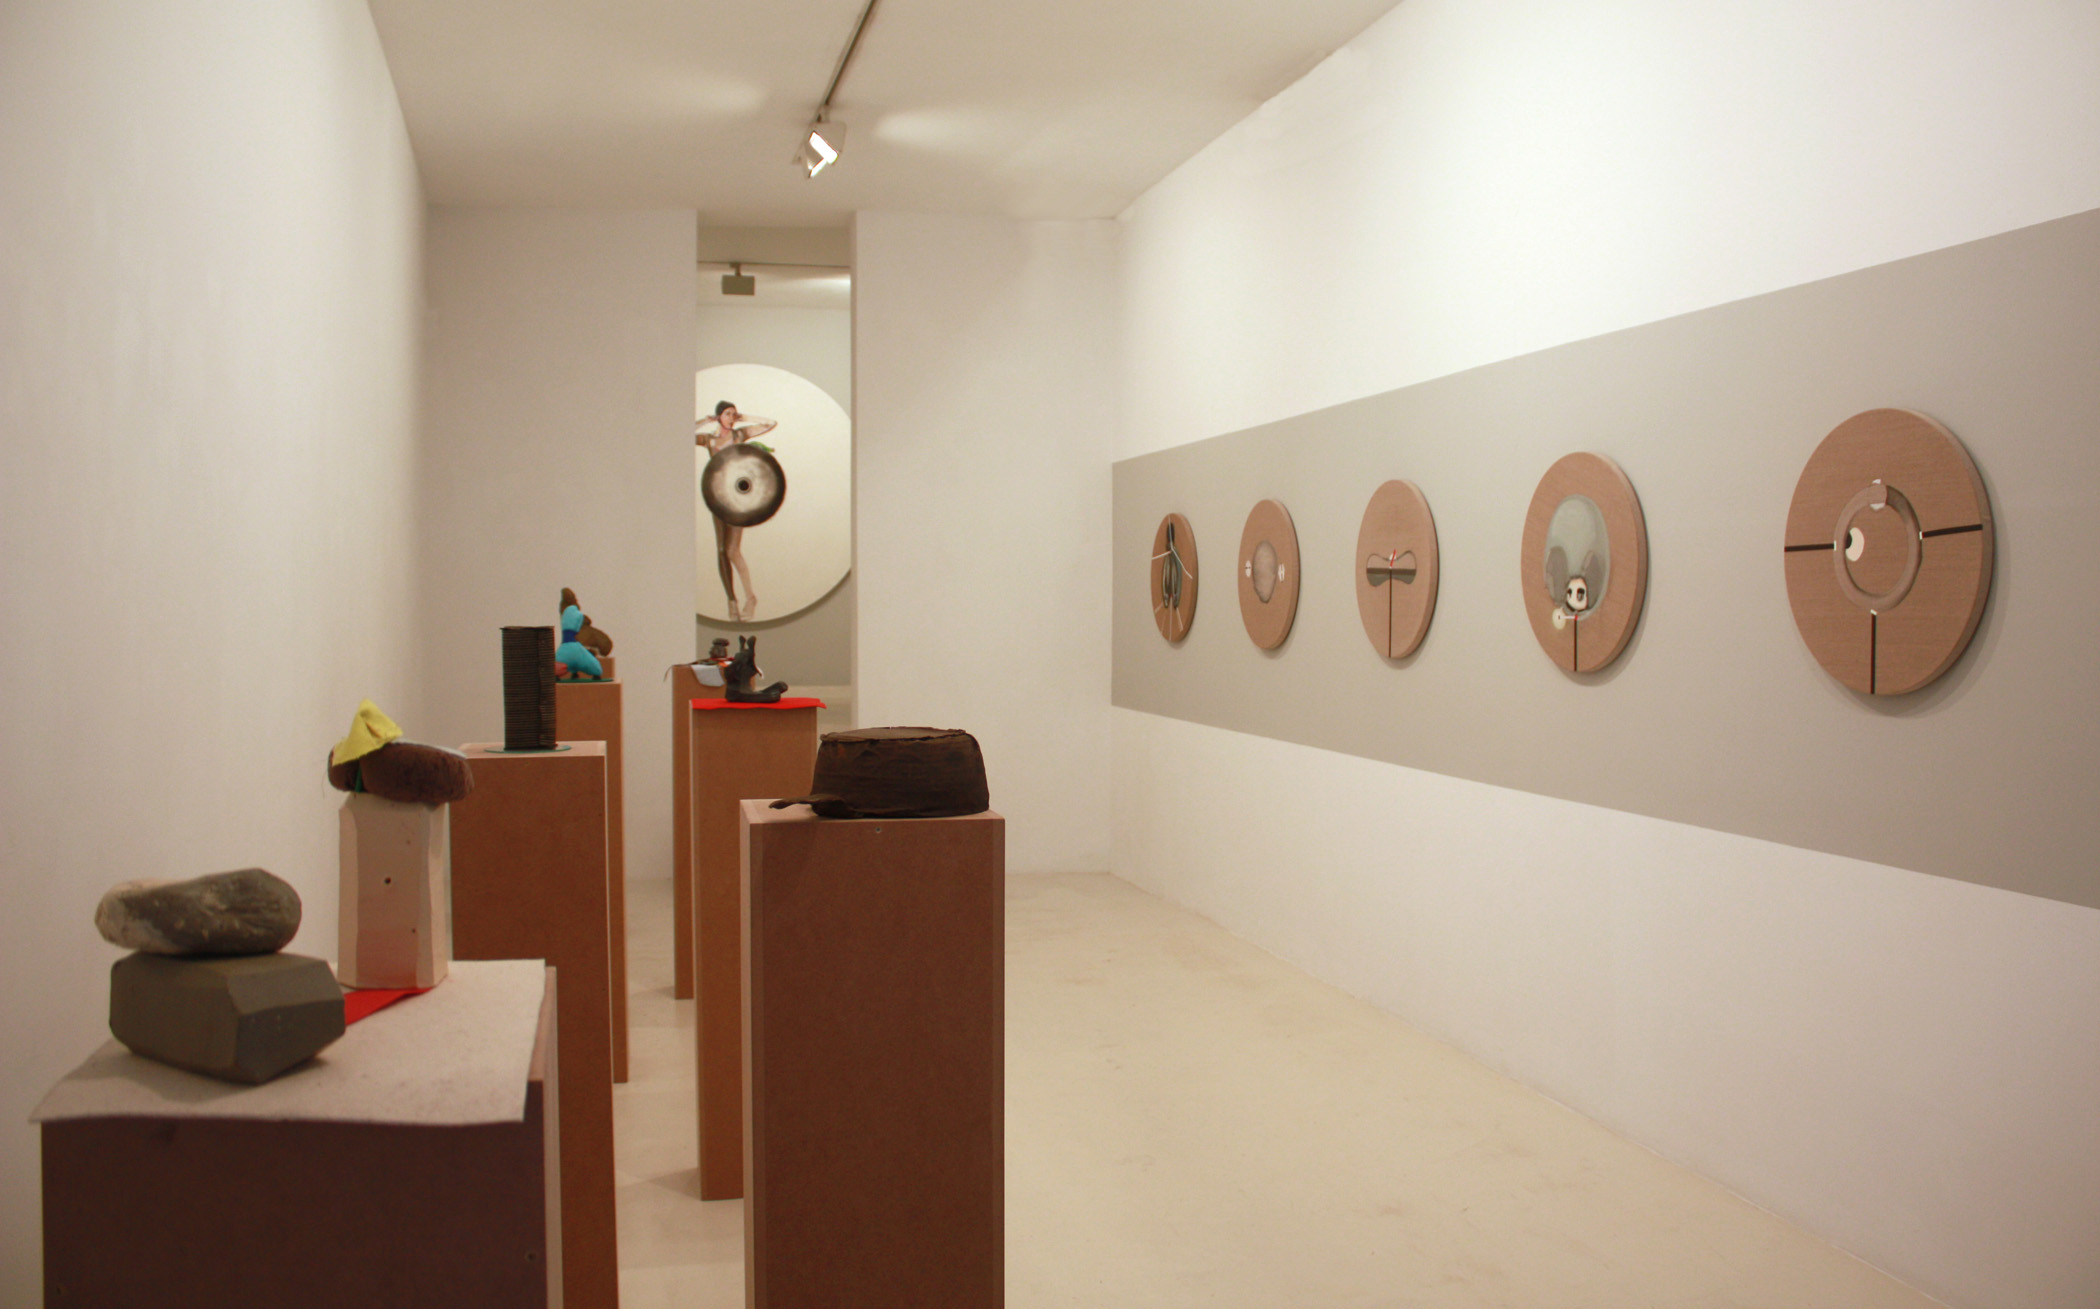 Exhibition view from Victoria Civera, 2012